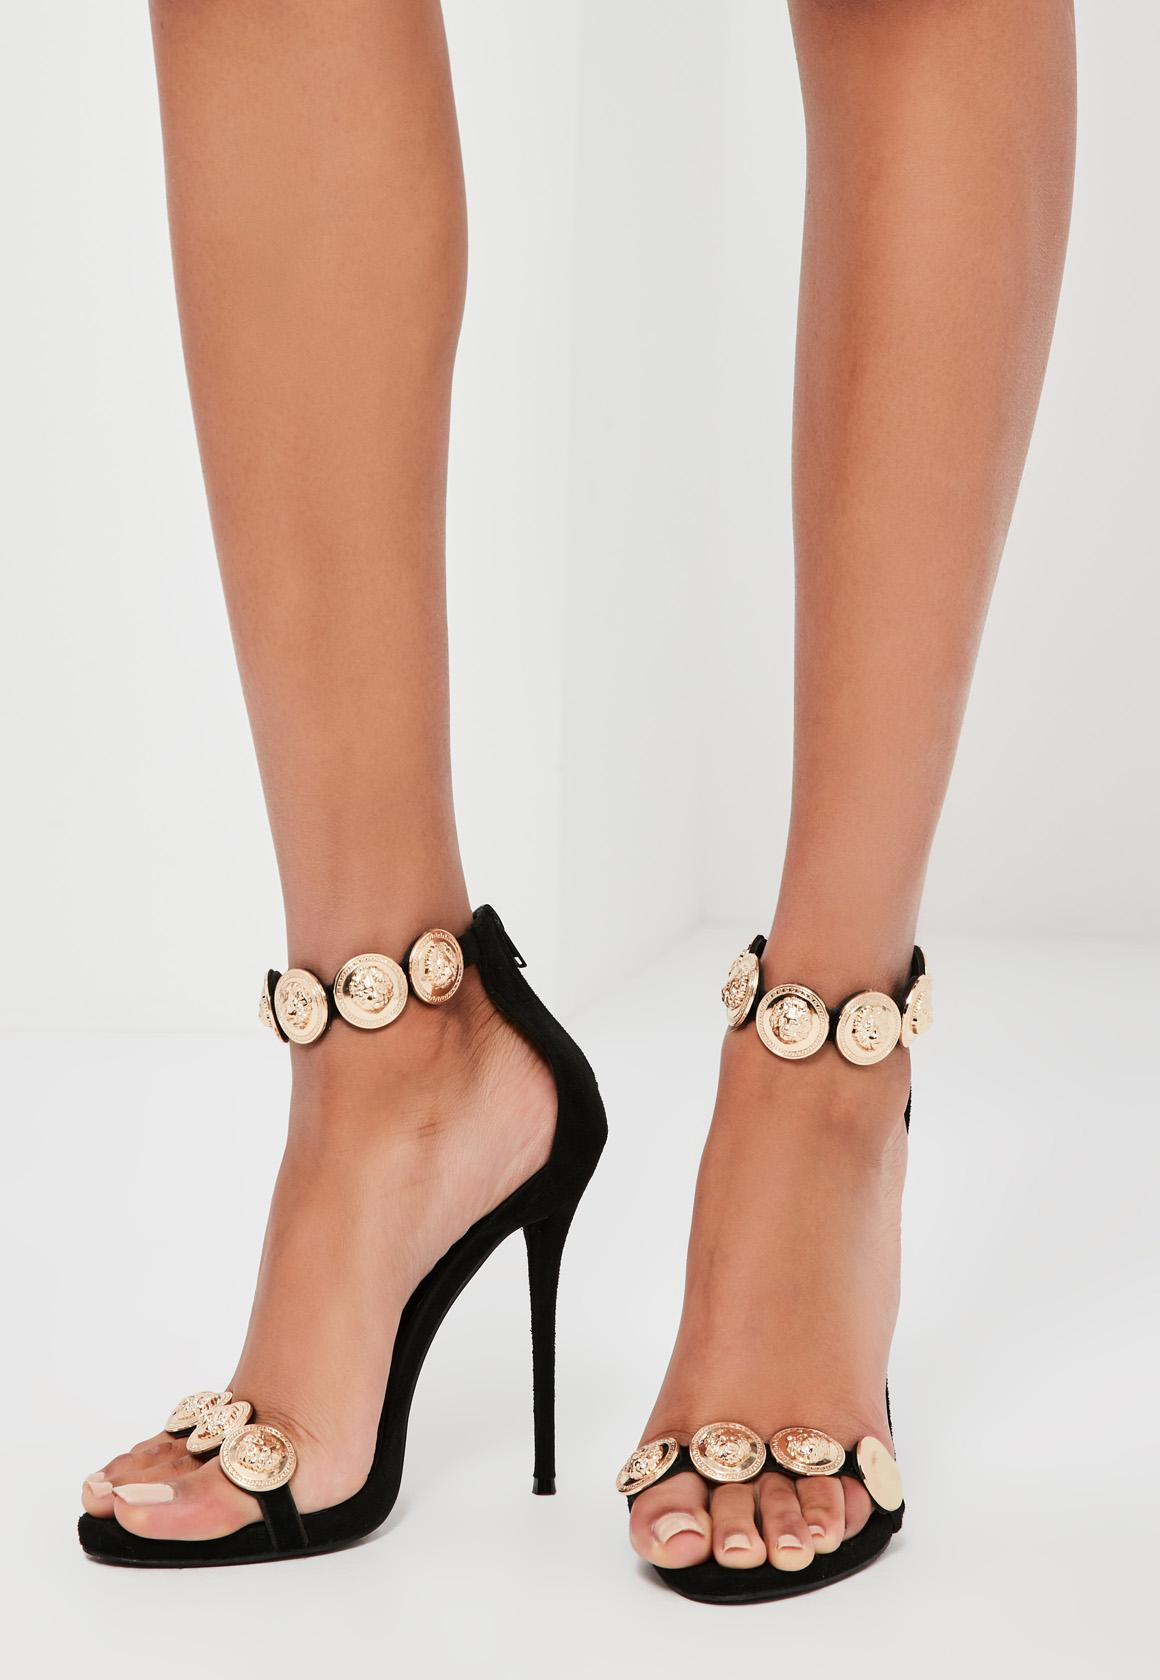 Black sandals heels